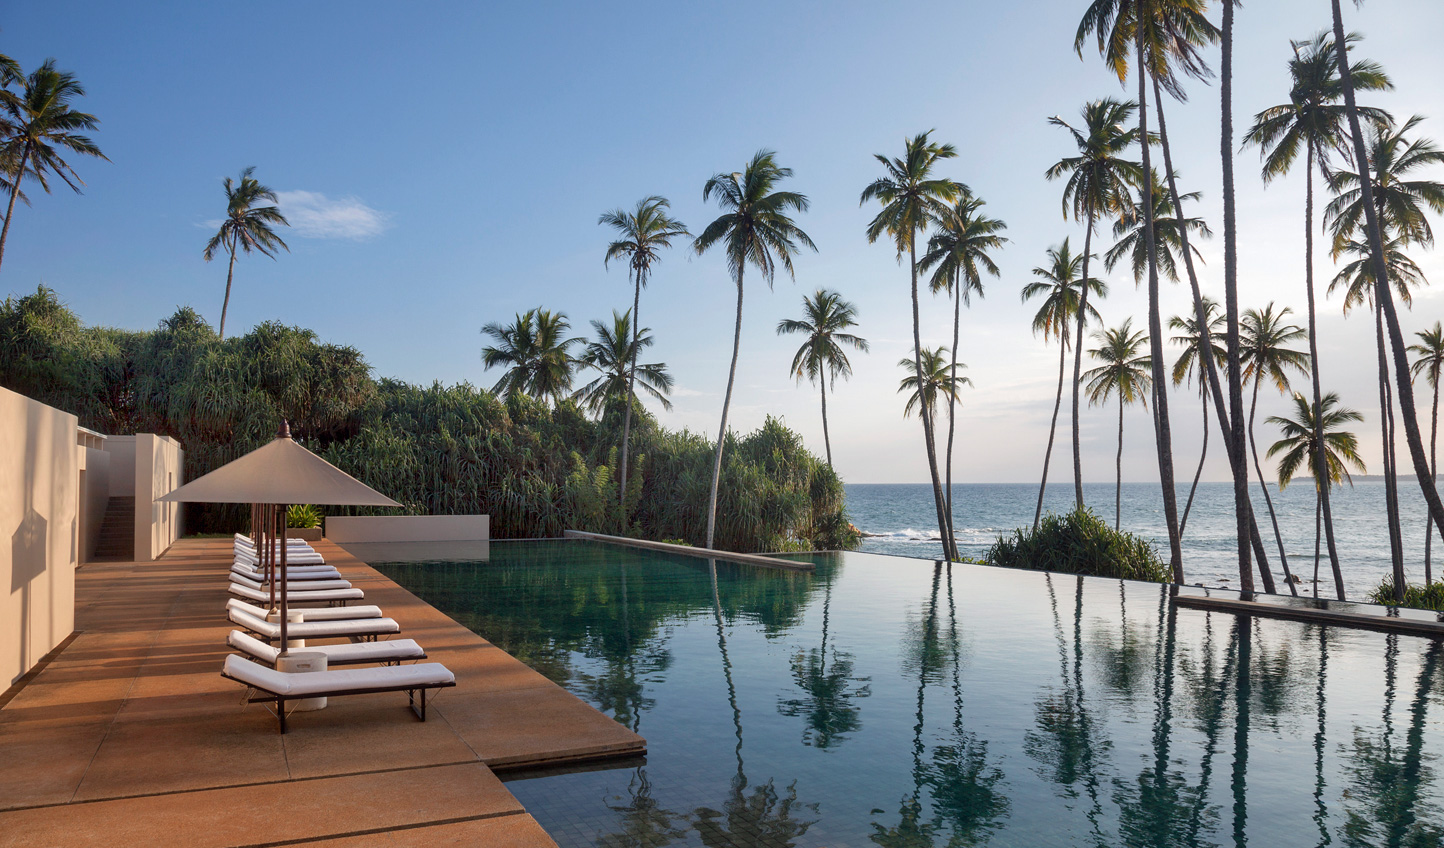 Gaze out over the horizon from the gorgeous infinity pool at Amanwella